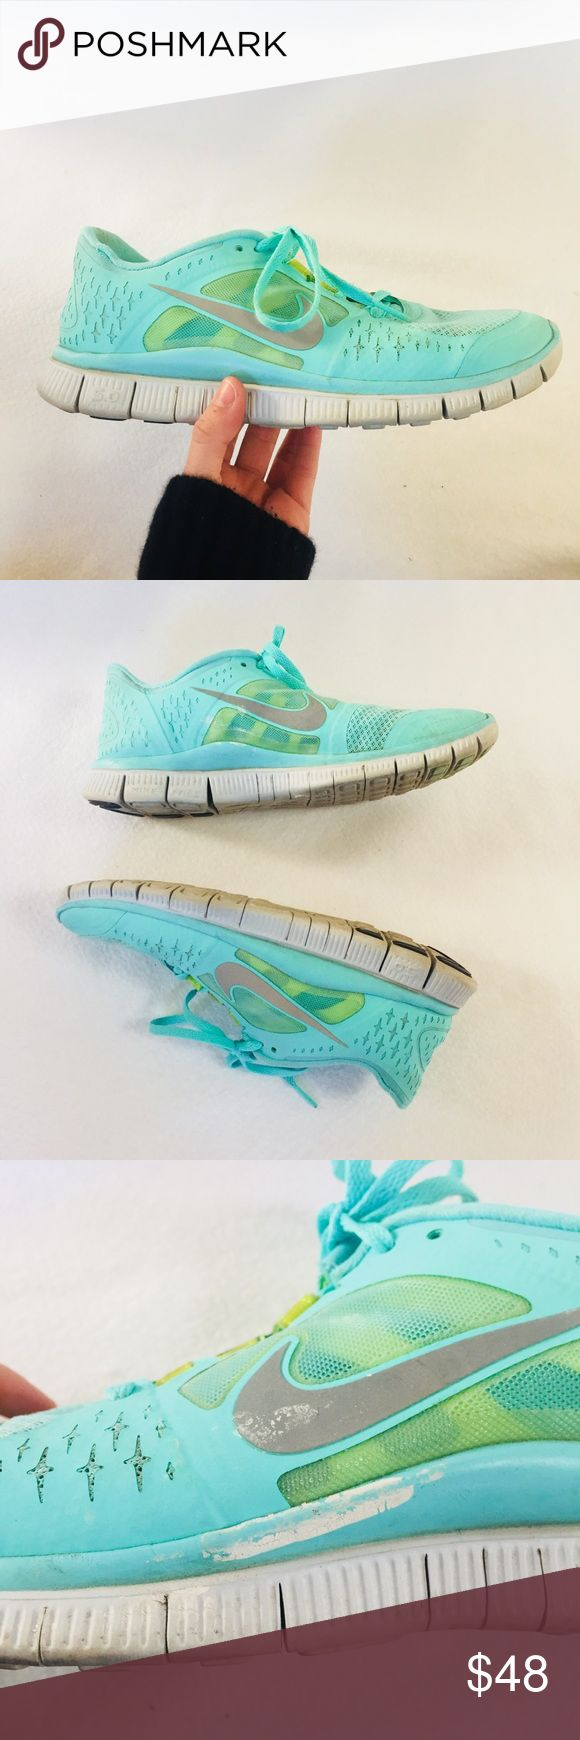 ✨ tiffany blue nike free runners 🏃‍♀️ extremely rare and hard to find! super stylish and lots of miles left. some white scuffs on side but virtually u noticeable when wearing. otherwise in great condition ✨🏃‍♀️👟 Nike Shoes Sneakers